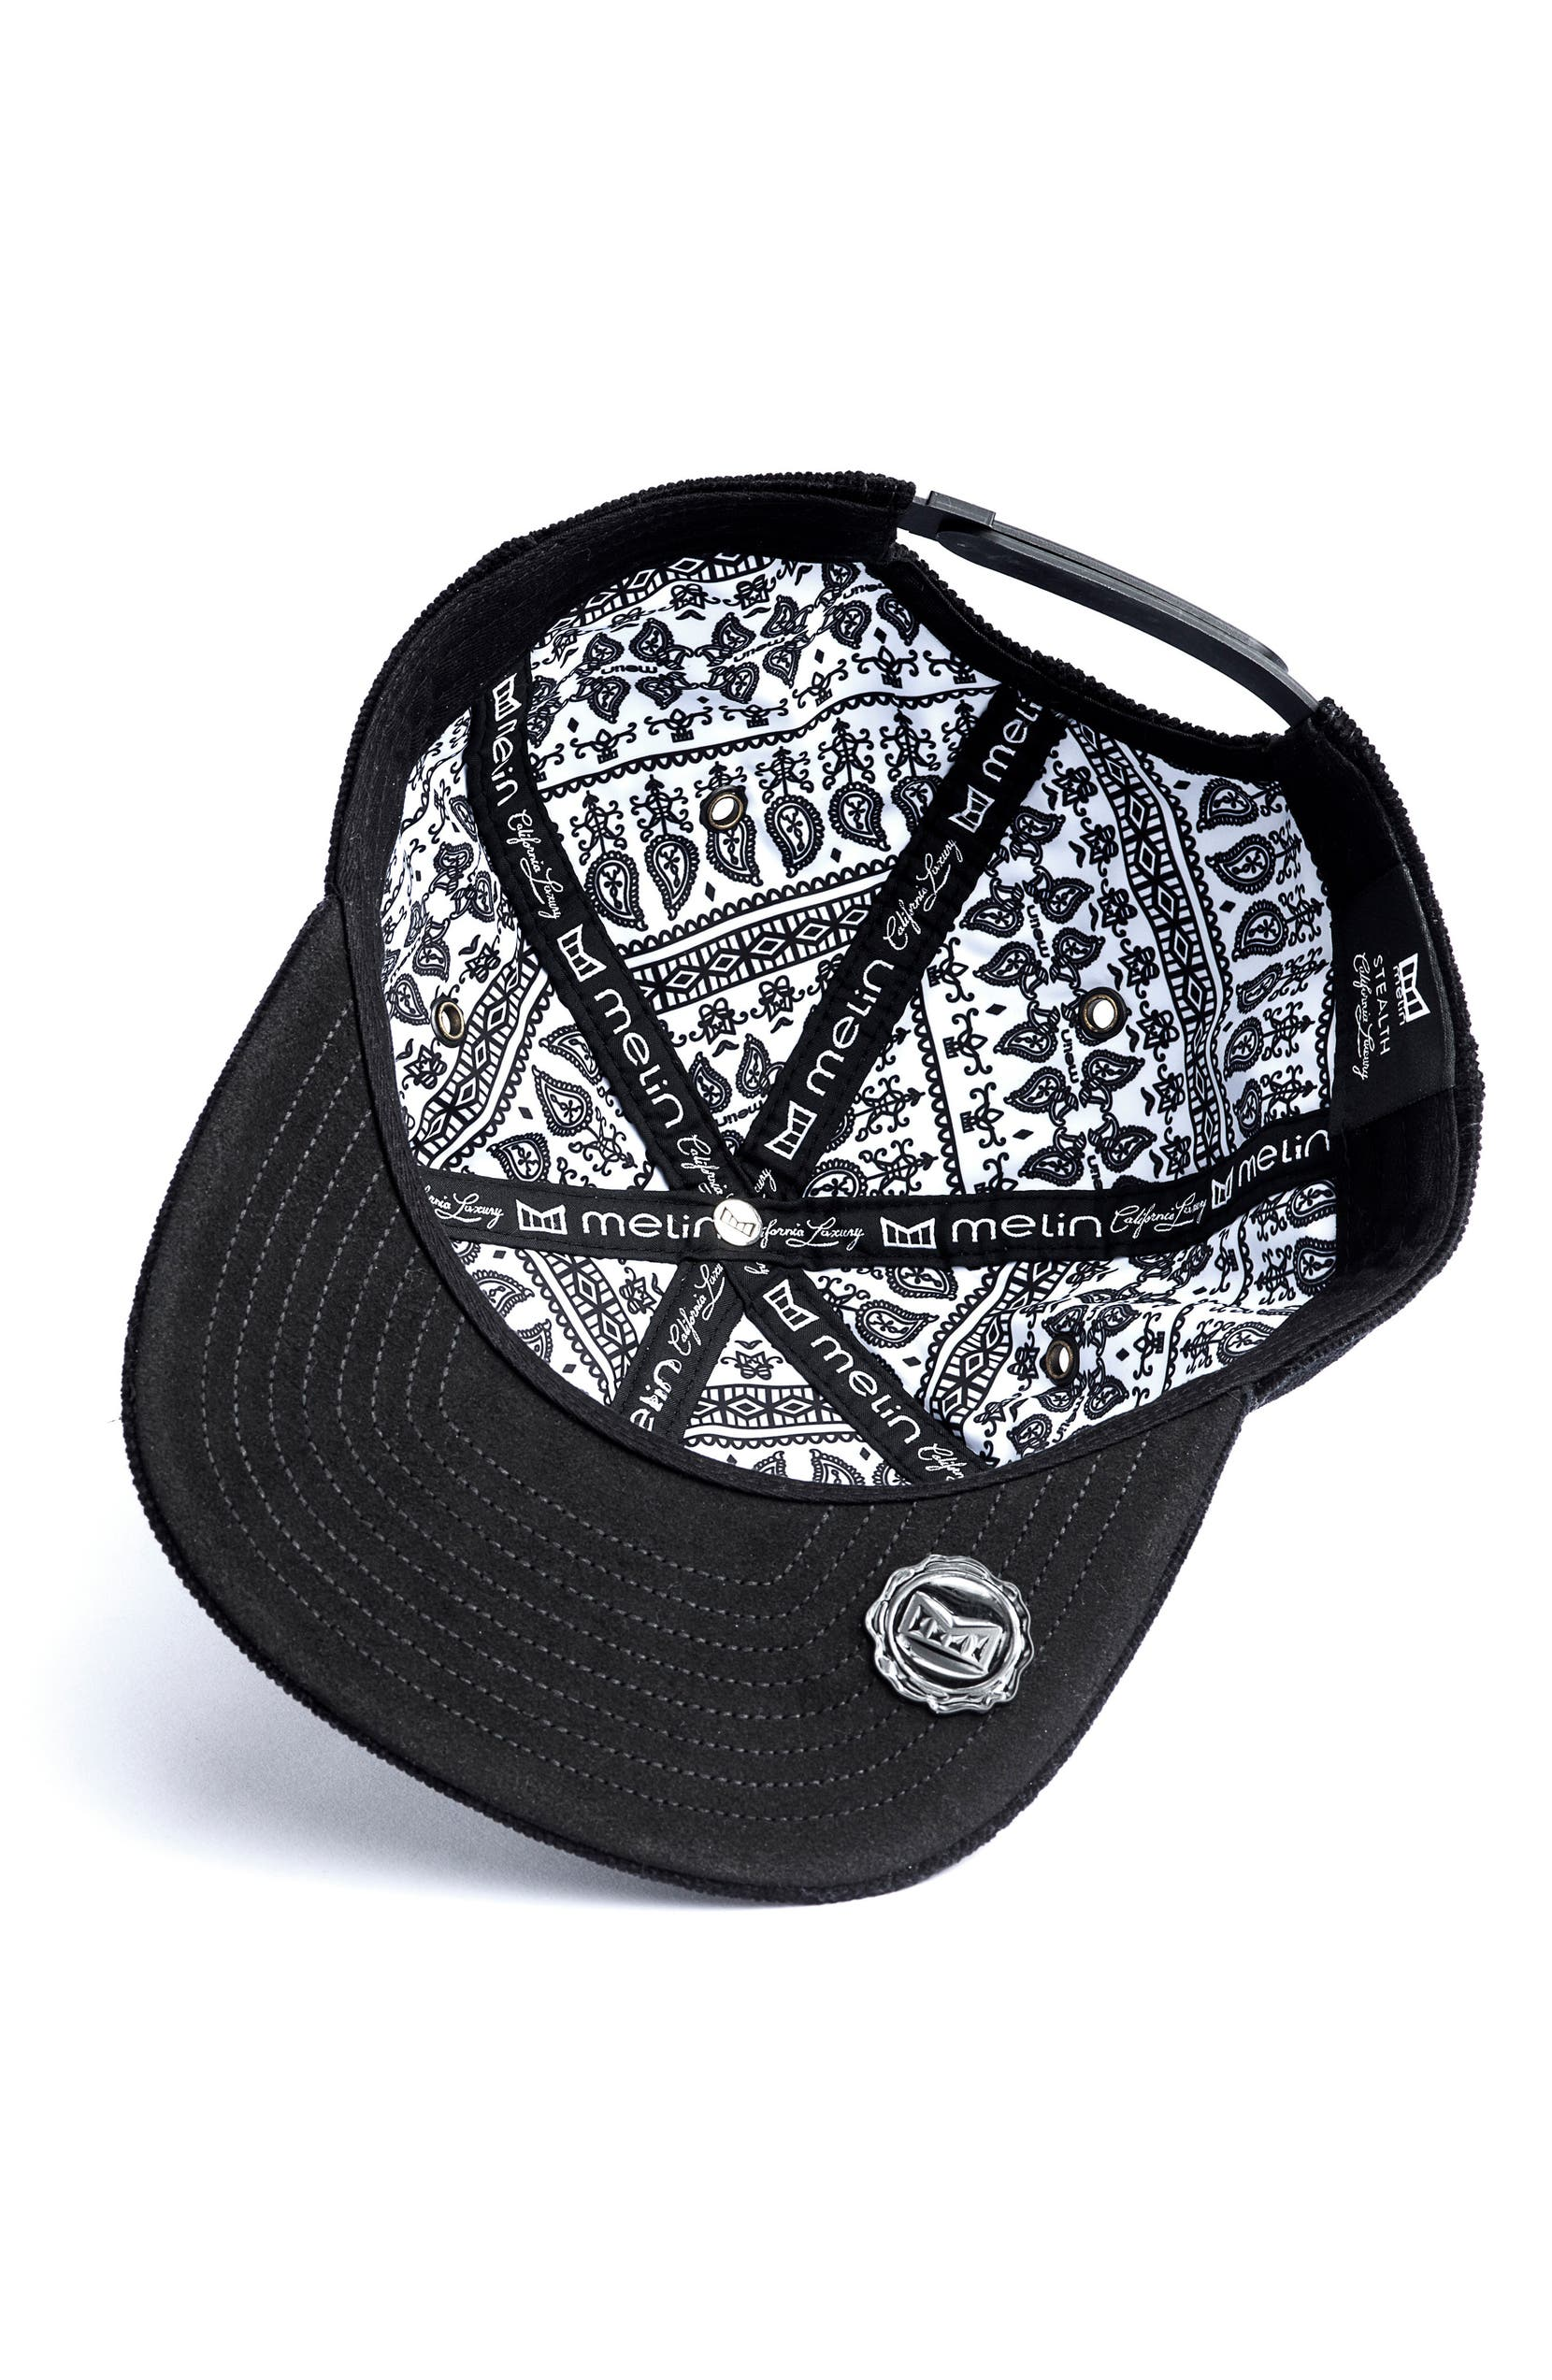 reputable site 98a5c 90ce6 Melin The Stealth Snapback Baseball Cap   Nordstrom